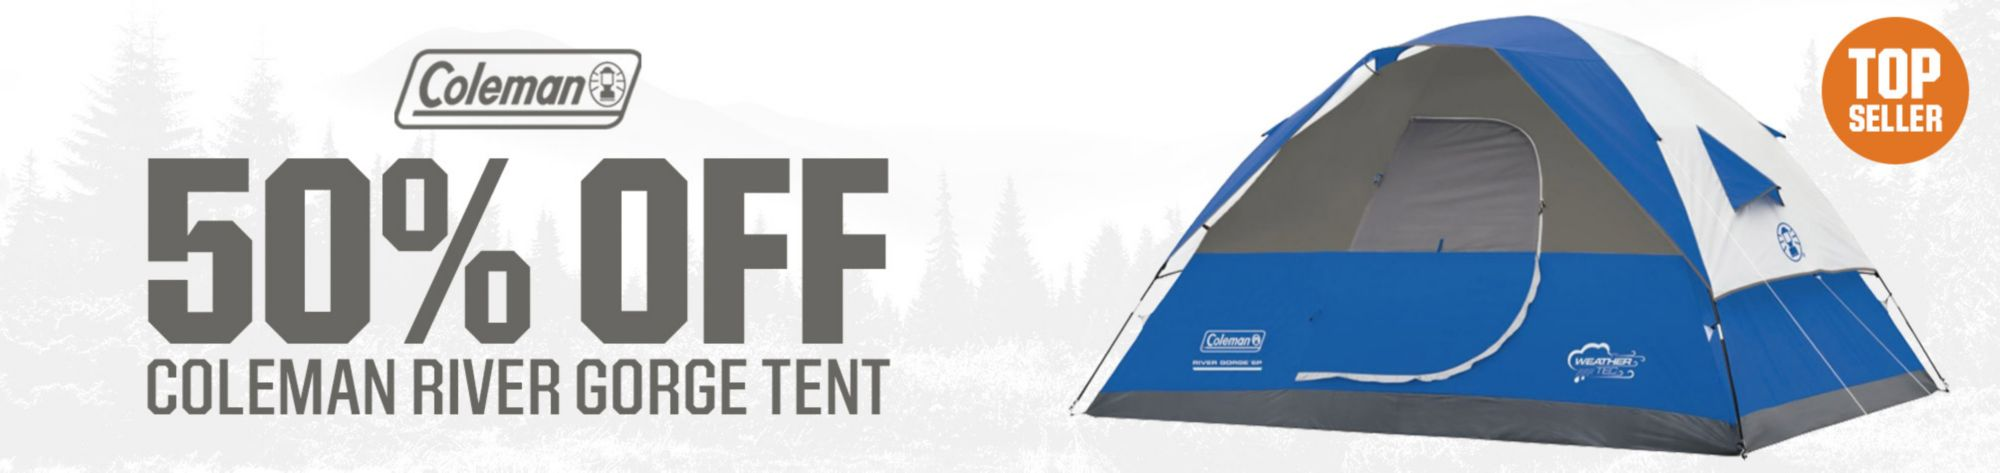 Shop Coleman River Gorge Tents